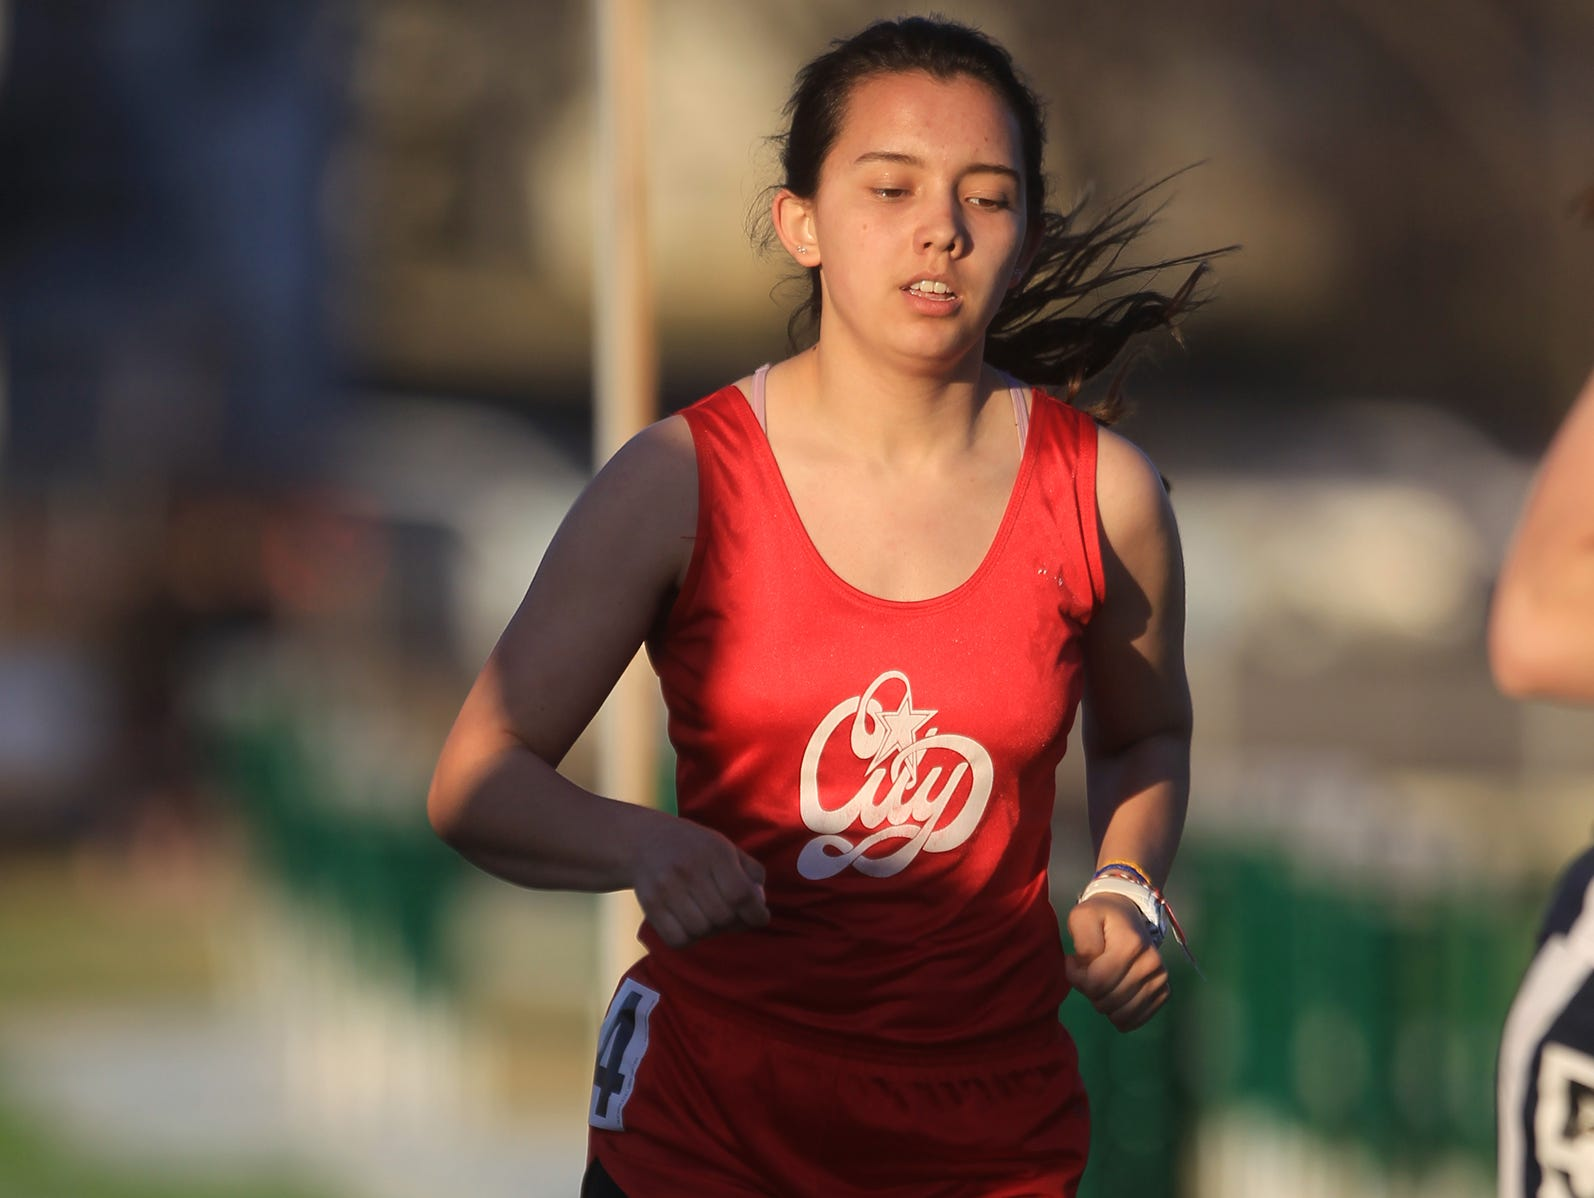 City High's Celeste Chadwick competes in the 800 meter run at the Women of Troy Relays at West High on Tuesday, March 31, 2015. David Scrivner / Iowa City Press-Citizen